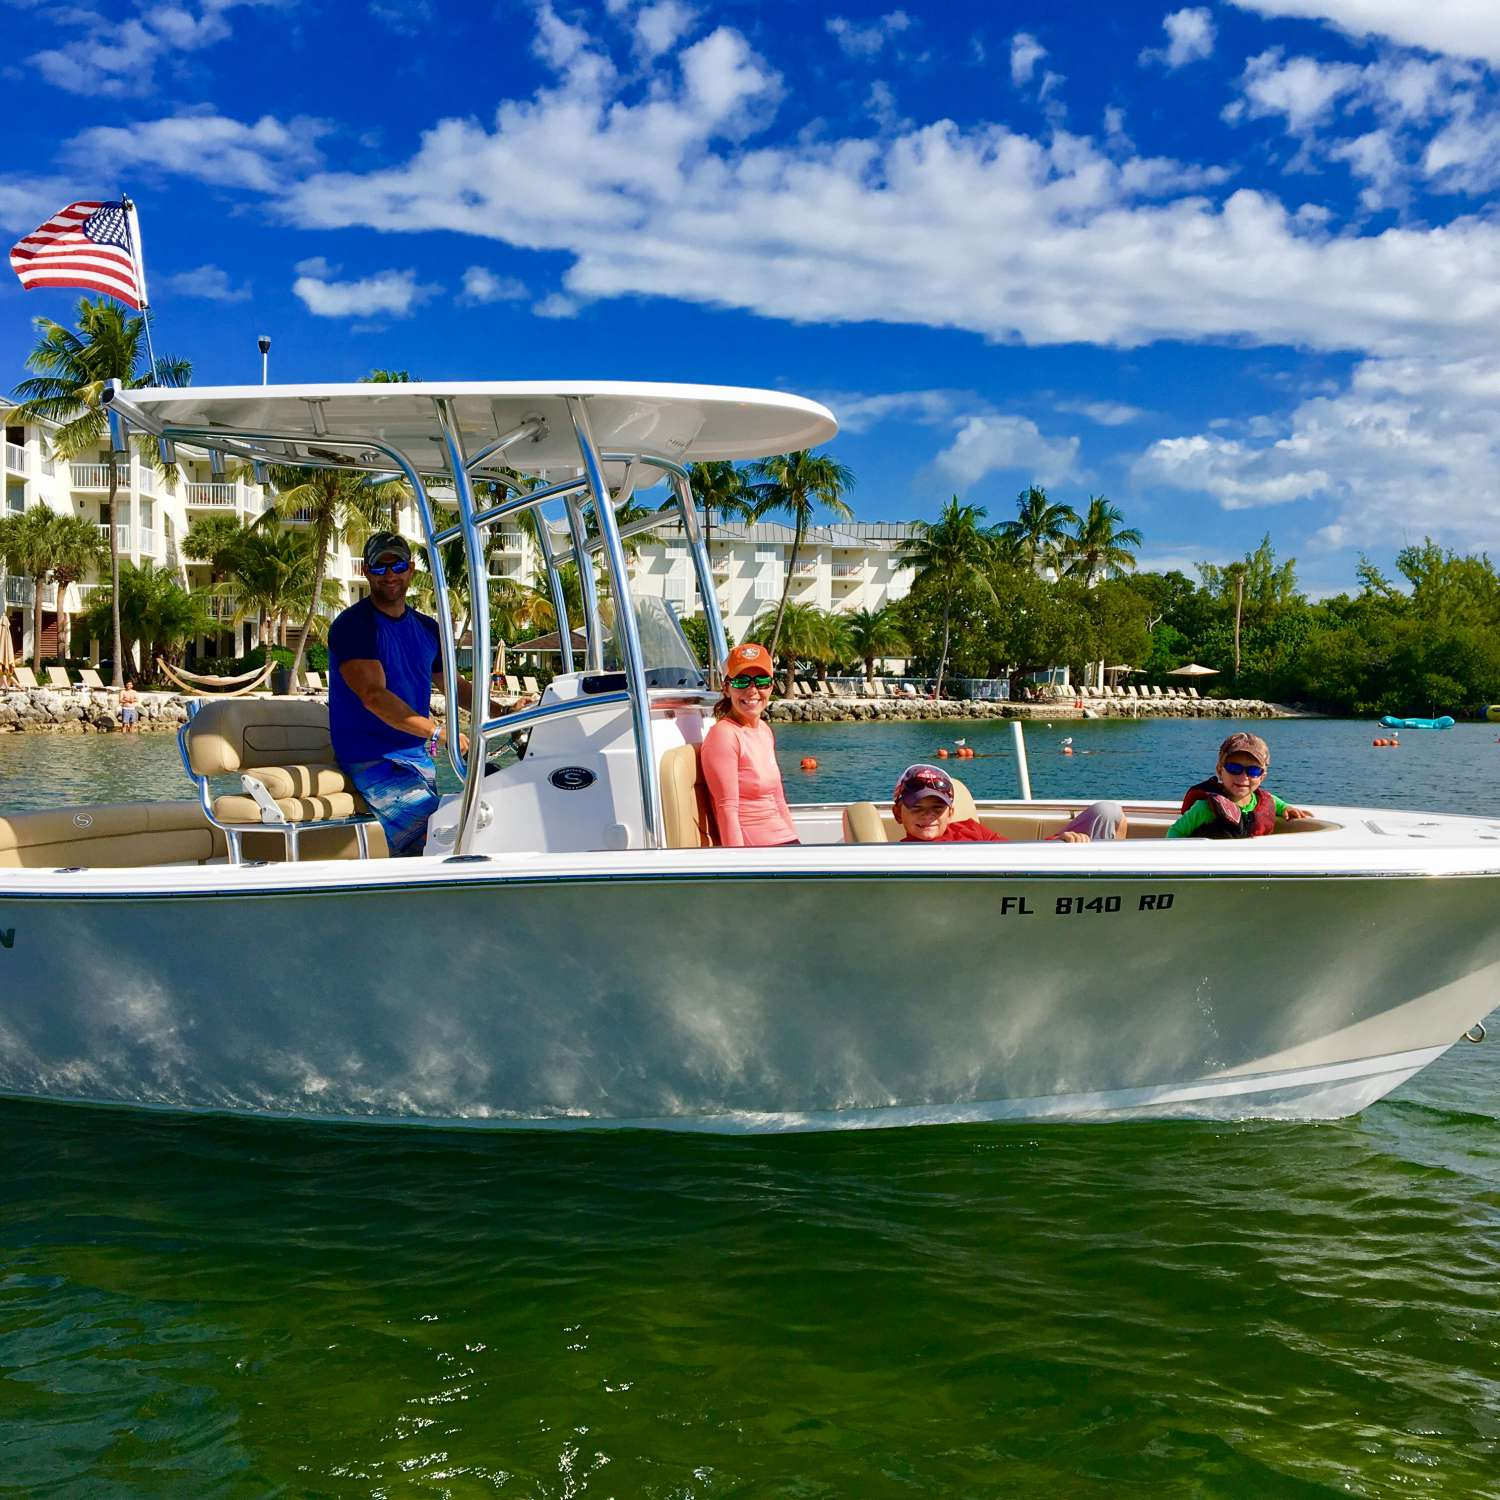 Title: The Keys - On board their Sportsman Heritage 211 Center Console - Location: Melbourne Beach, Florida. Participating in the Photo Contest #SportsmanDecember2016